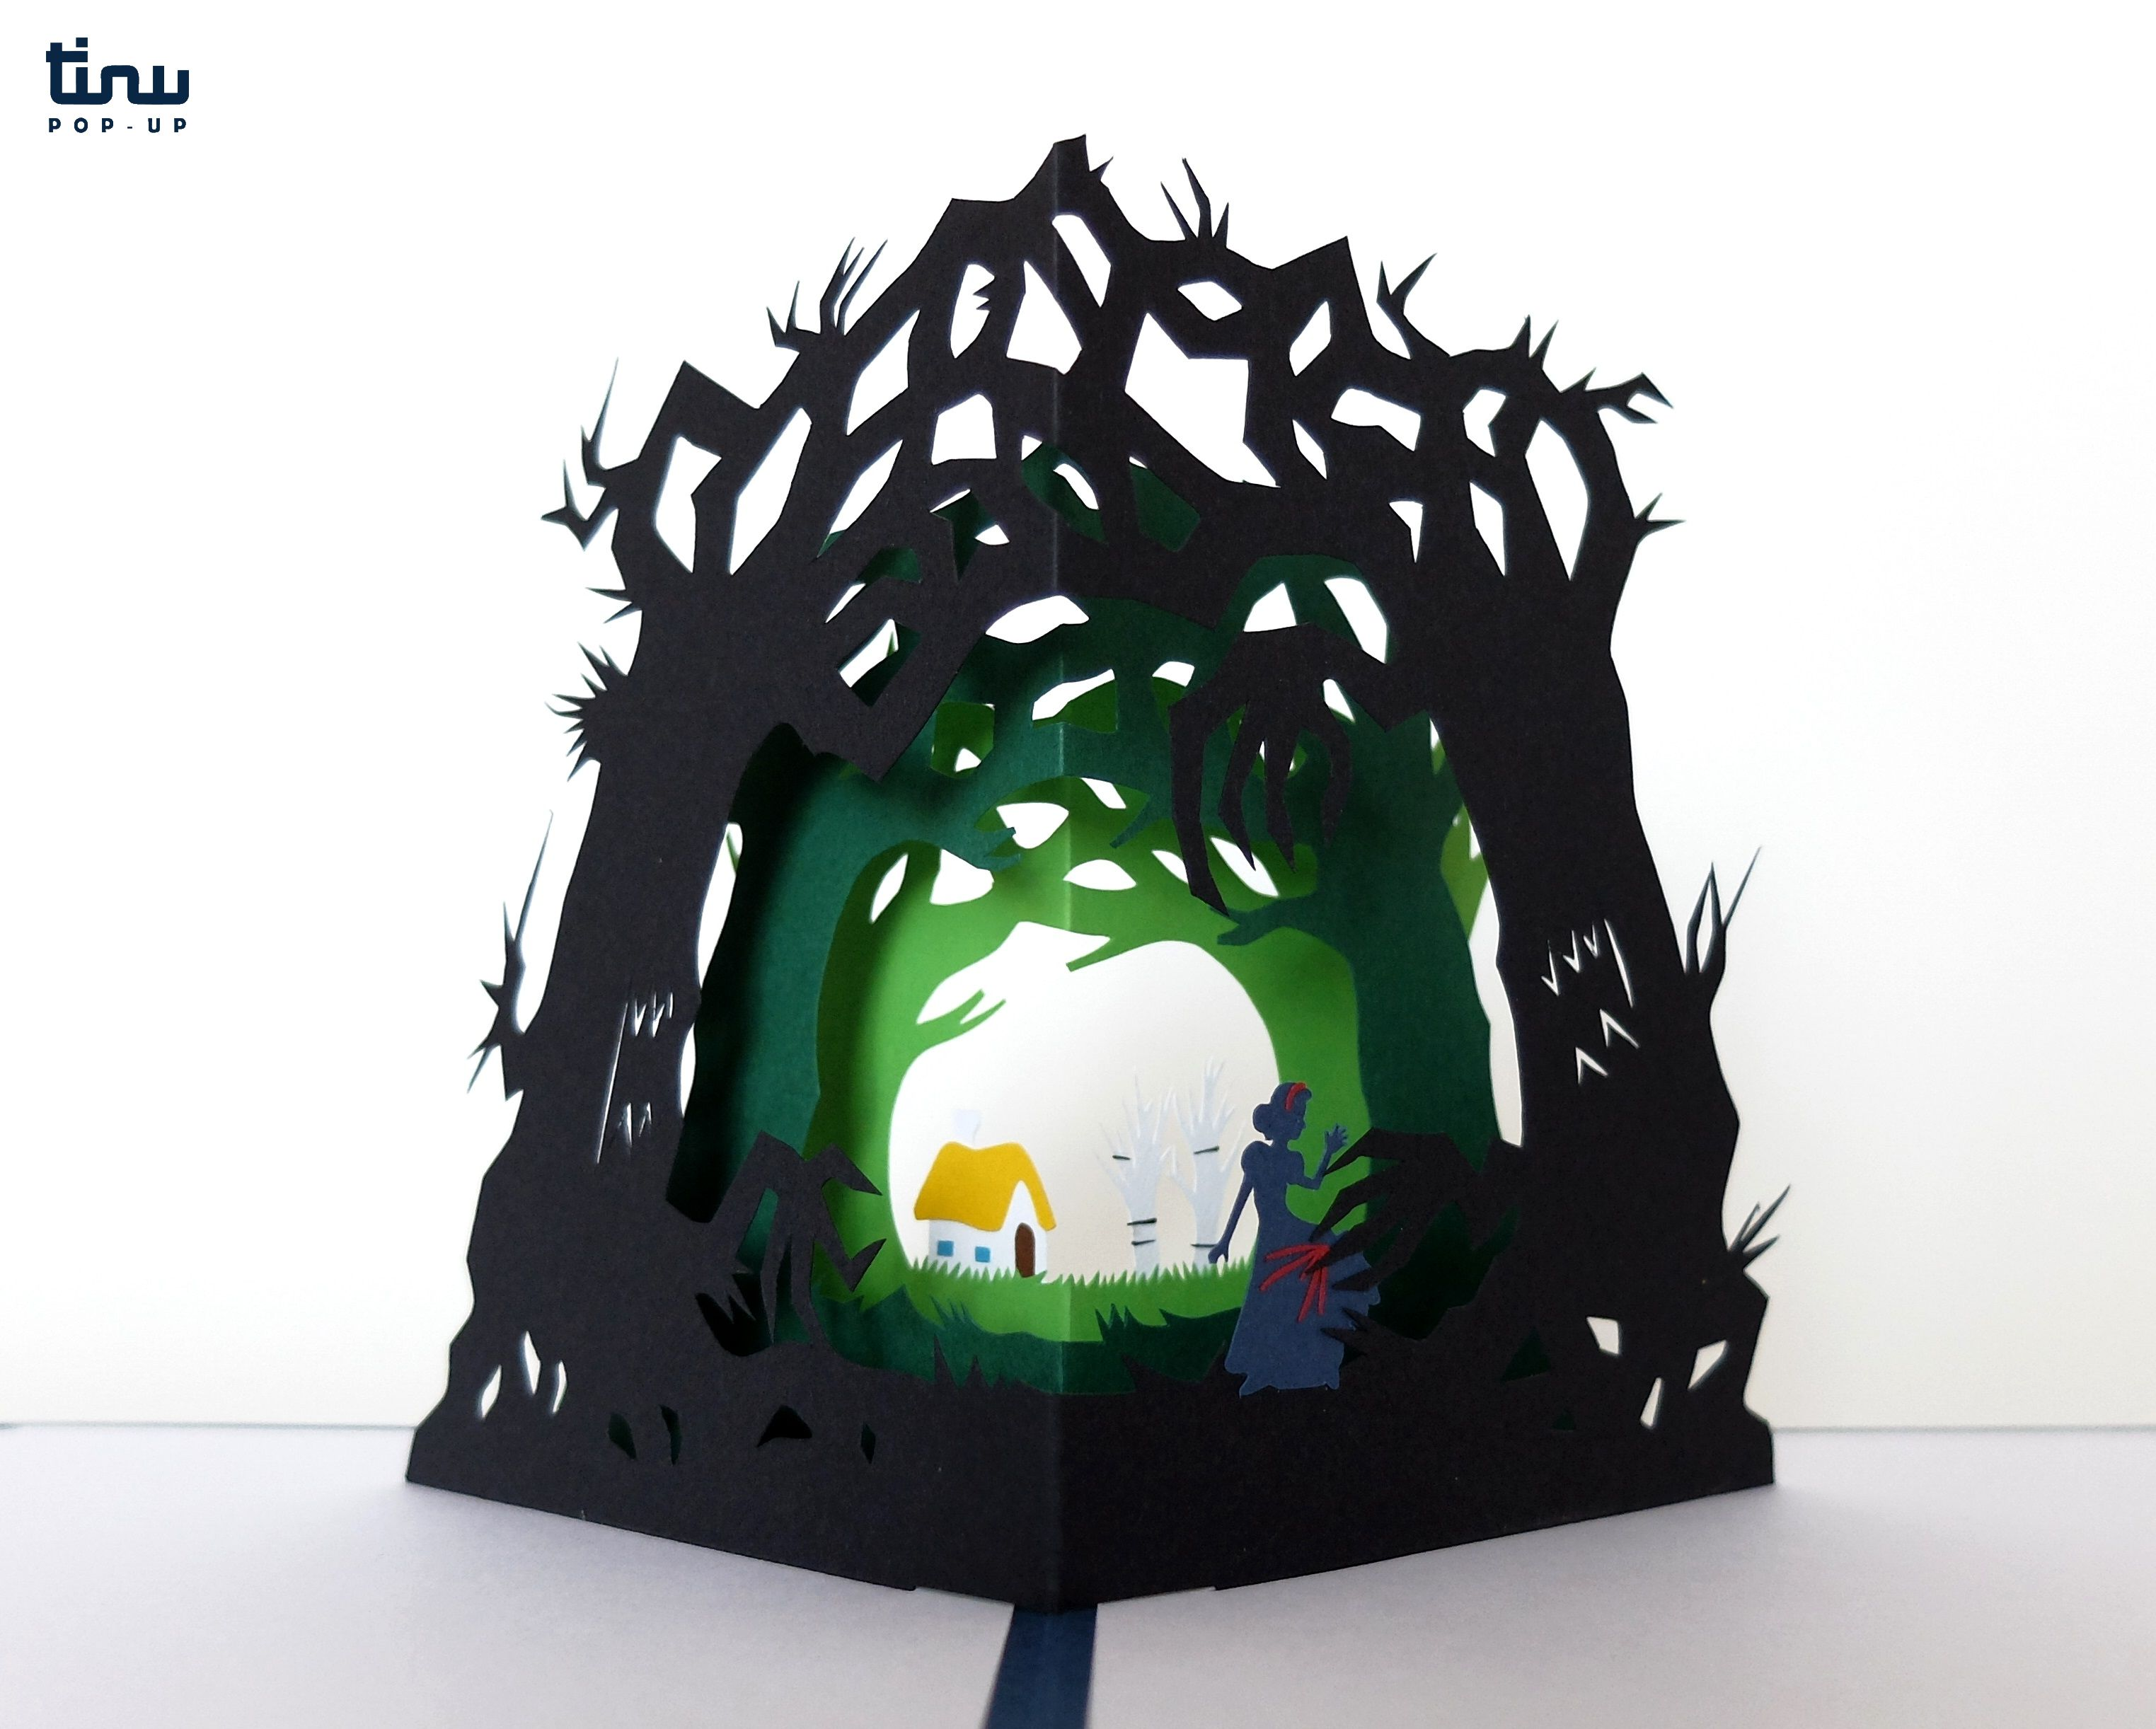 tinu pop up blanche neige snow white papier paper 3D card popup